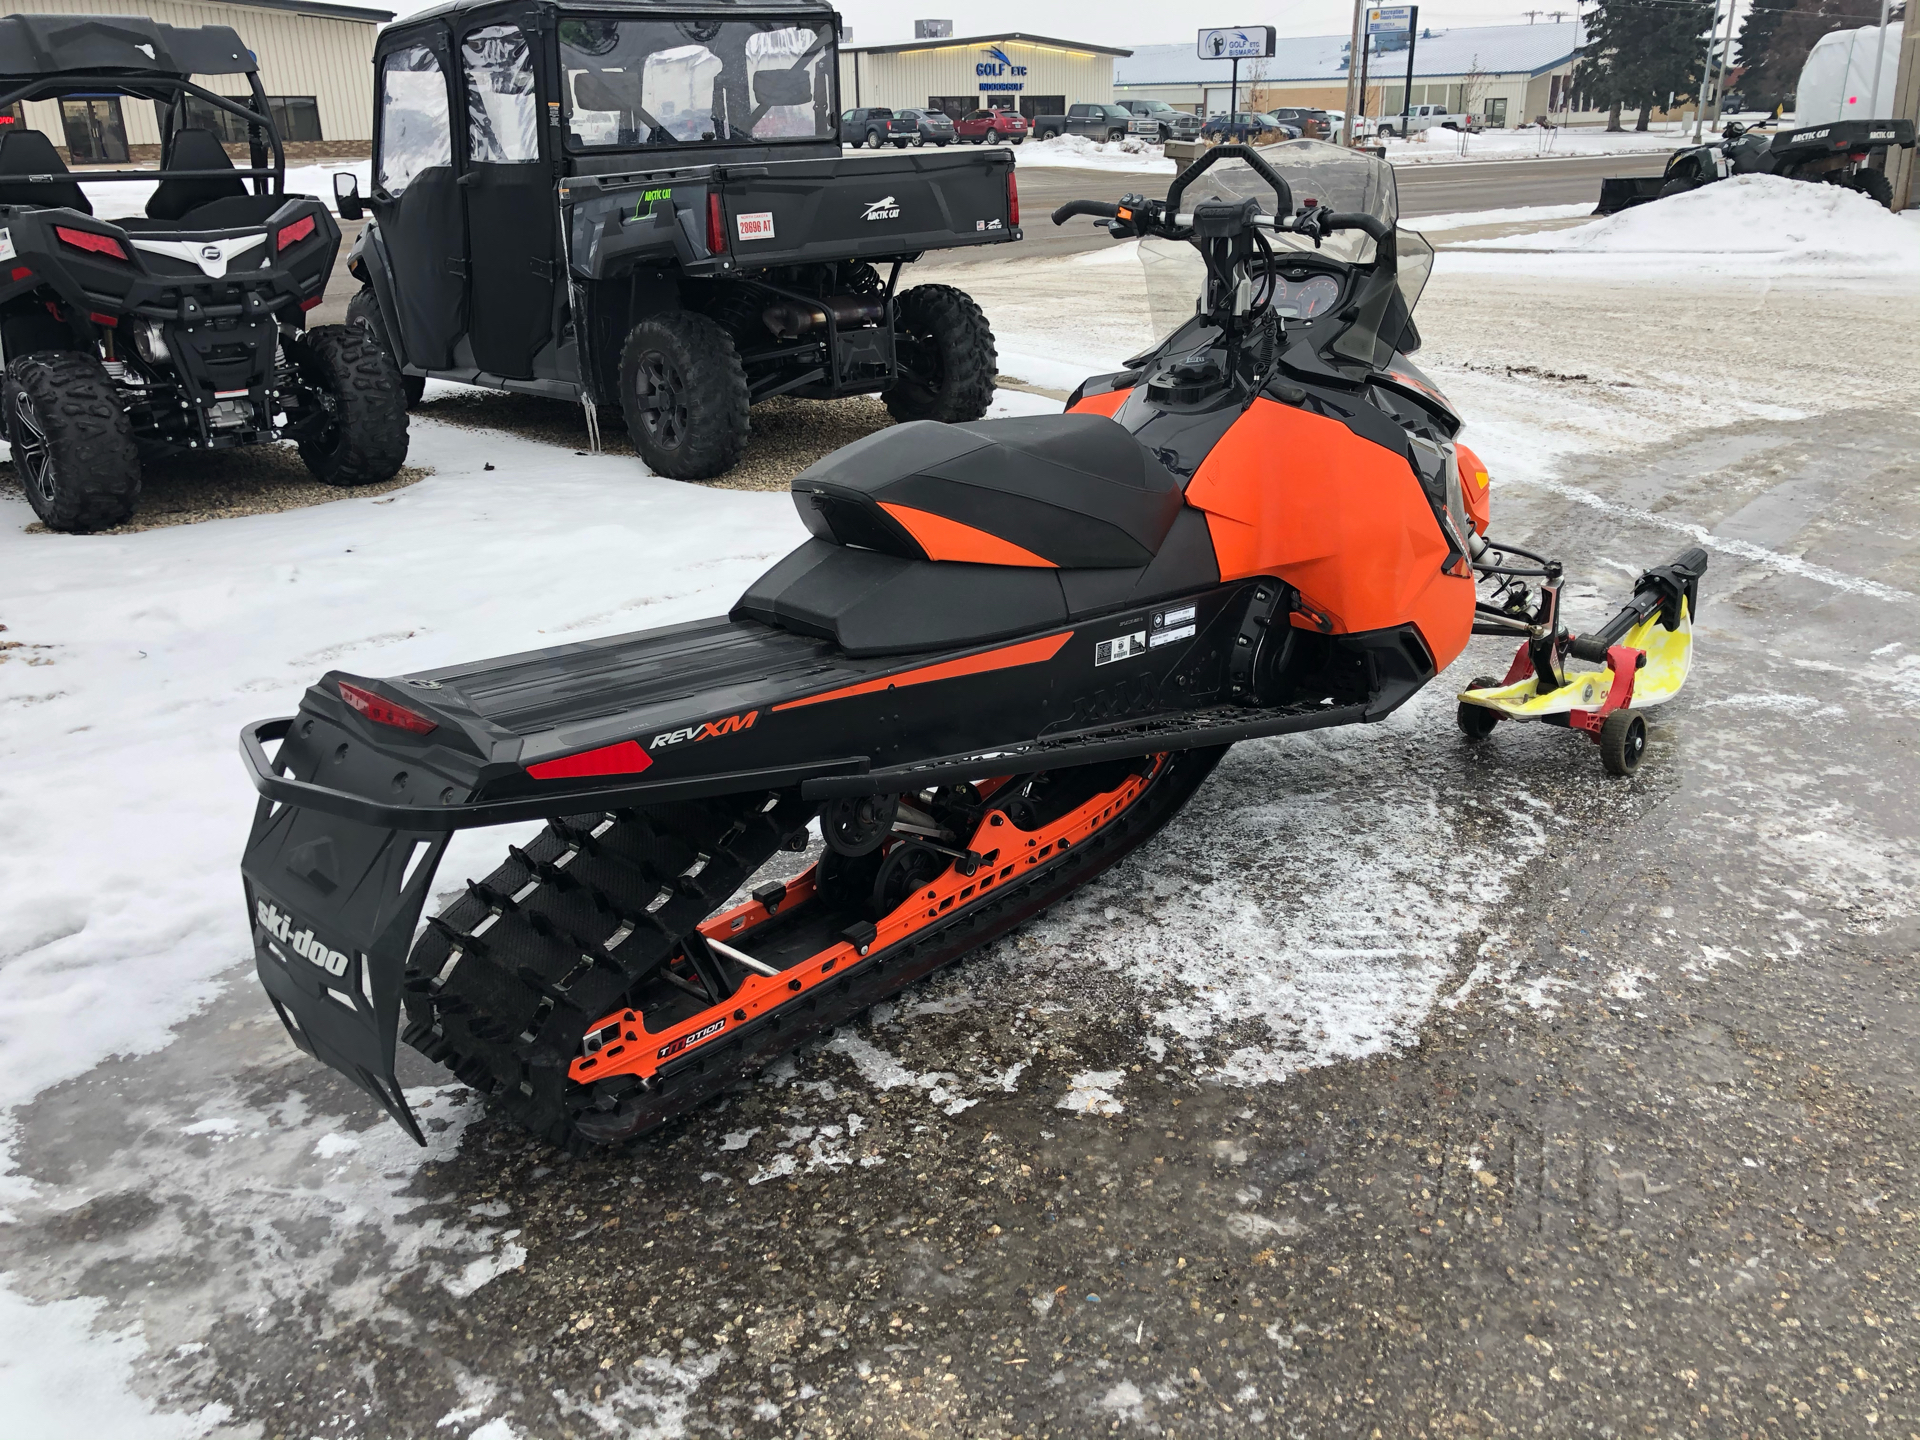 2016 Ski-Doo Renegade Backcountry 800R E-TEC in Bismarck, North Dakota - Photo 4